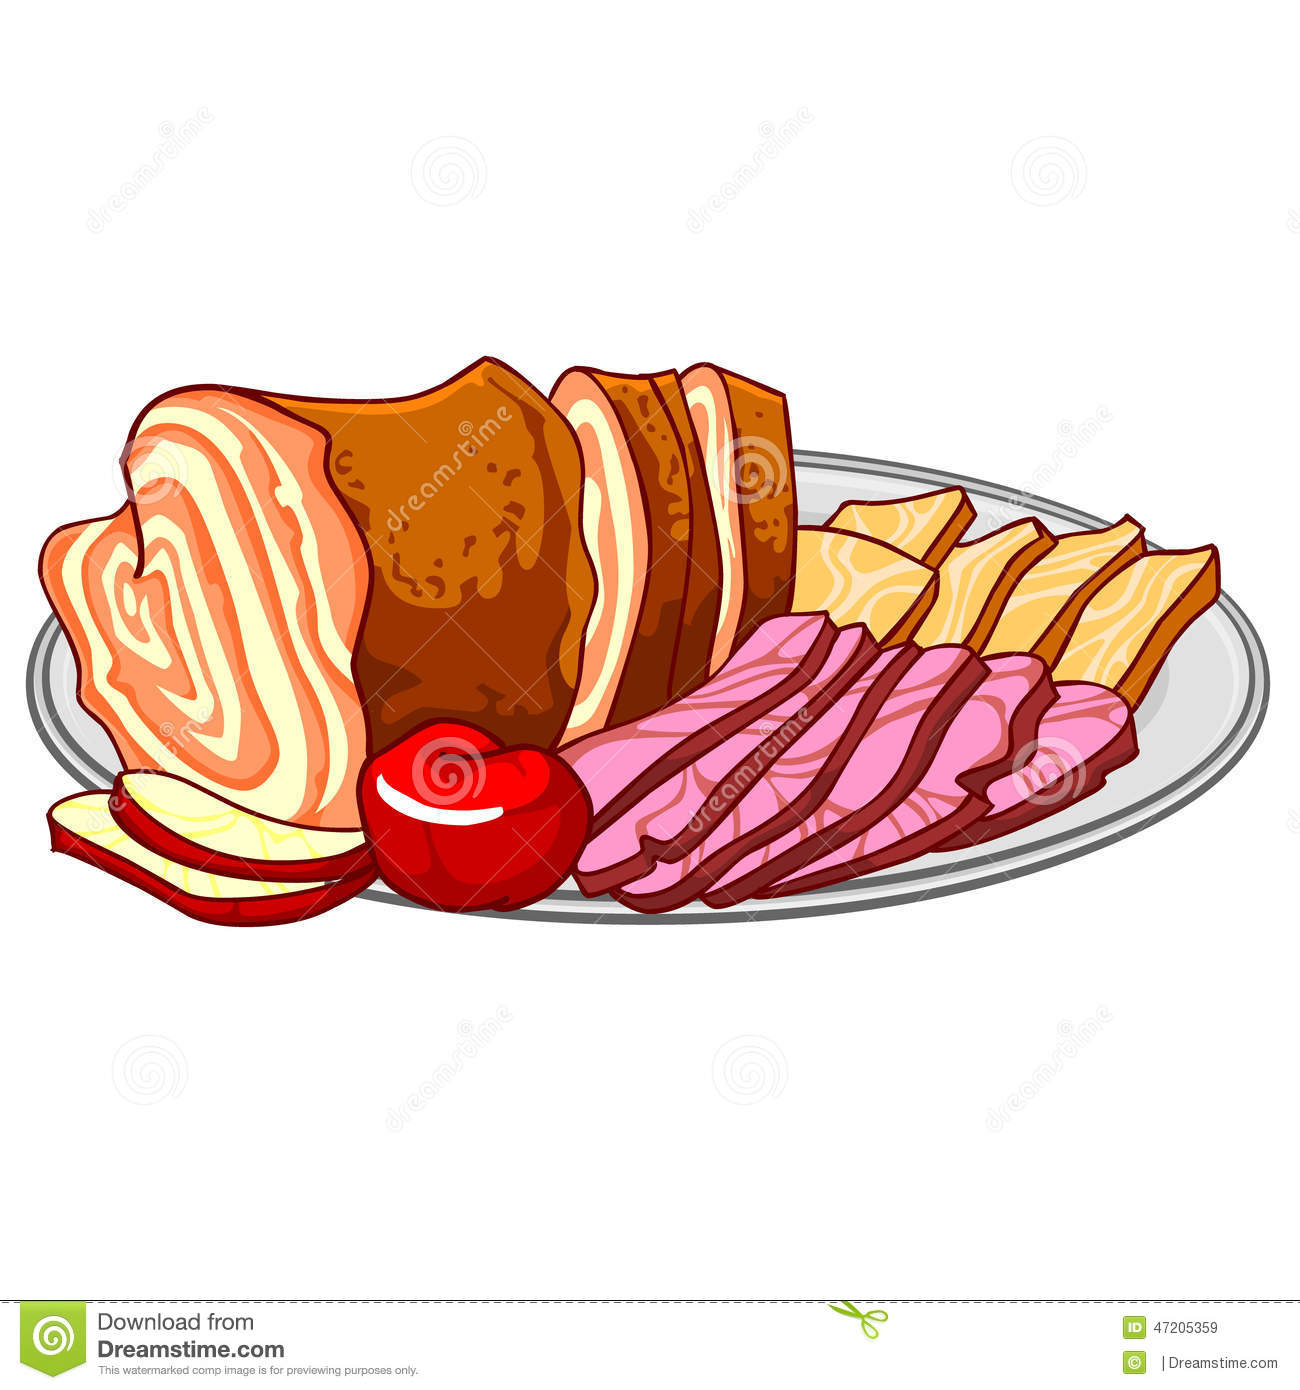 Cold cuts clipart #16